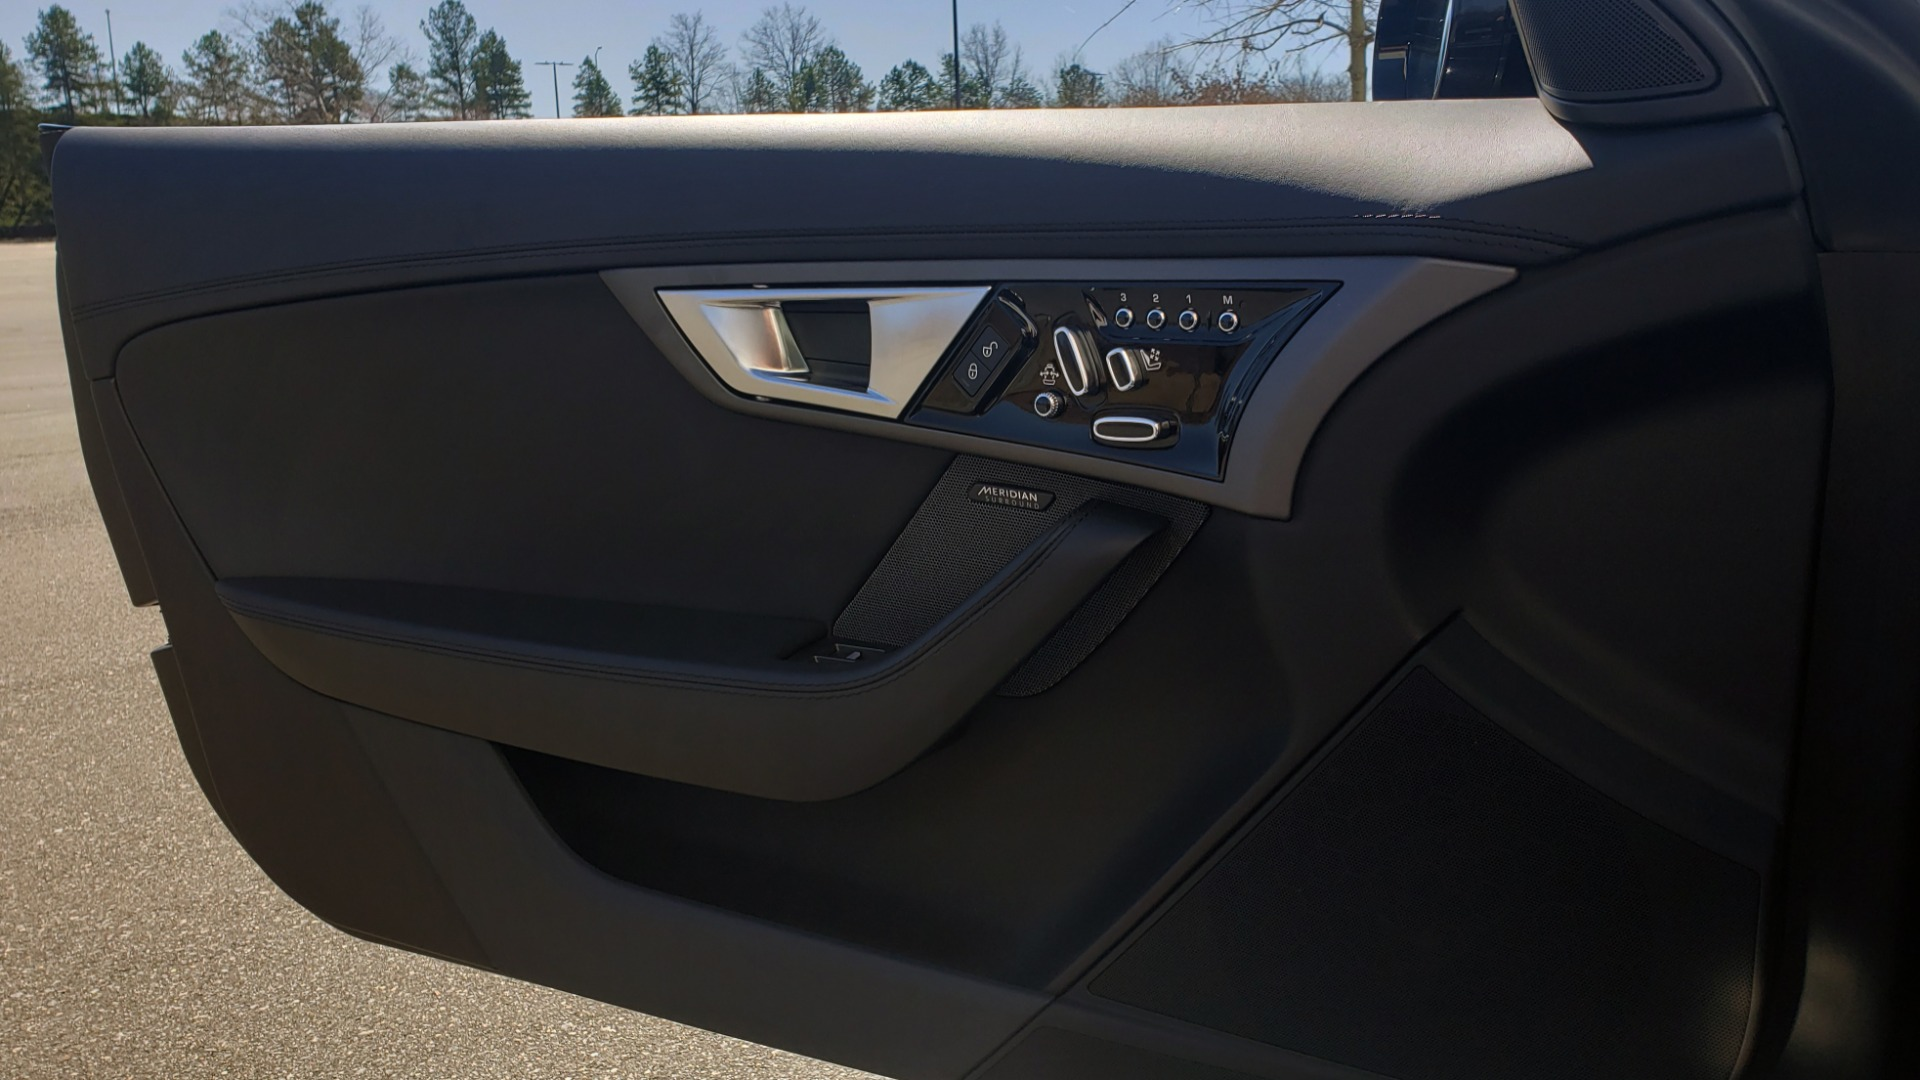 Used 2016 Jaguar F-TYPE R CONVERTIBLE / SC 5.0L 550HP / VISION PACK 3 / BSM / REARVIEW for sale $63,000 at Formula Imports in Charlotte NC 28227 25